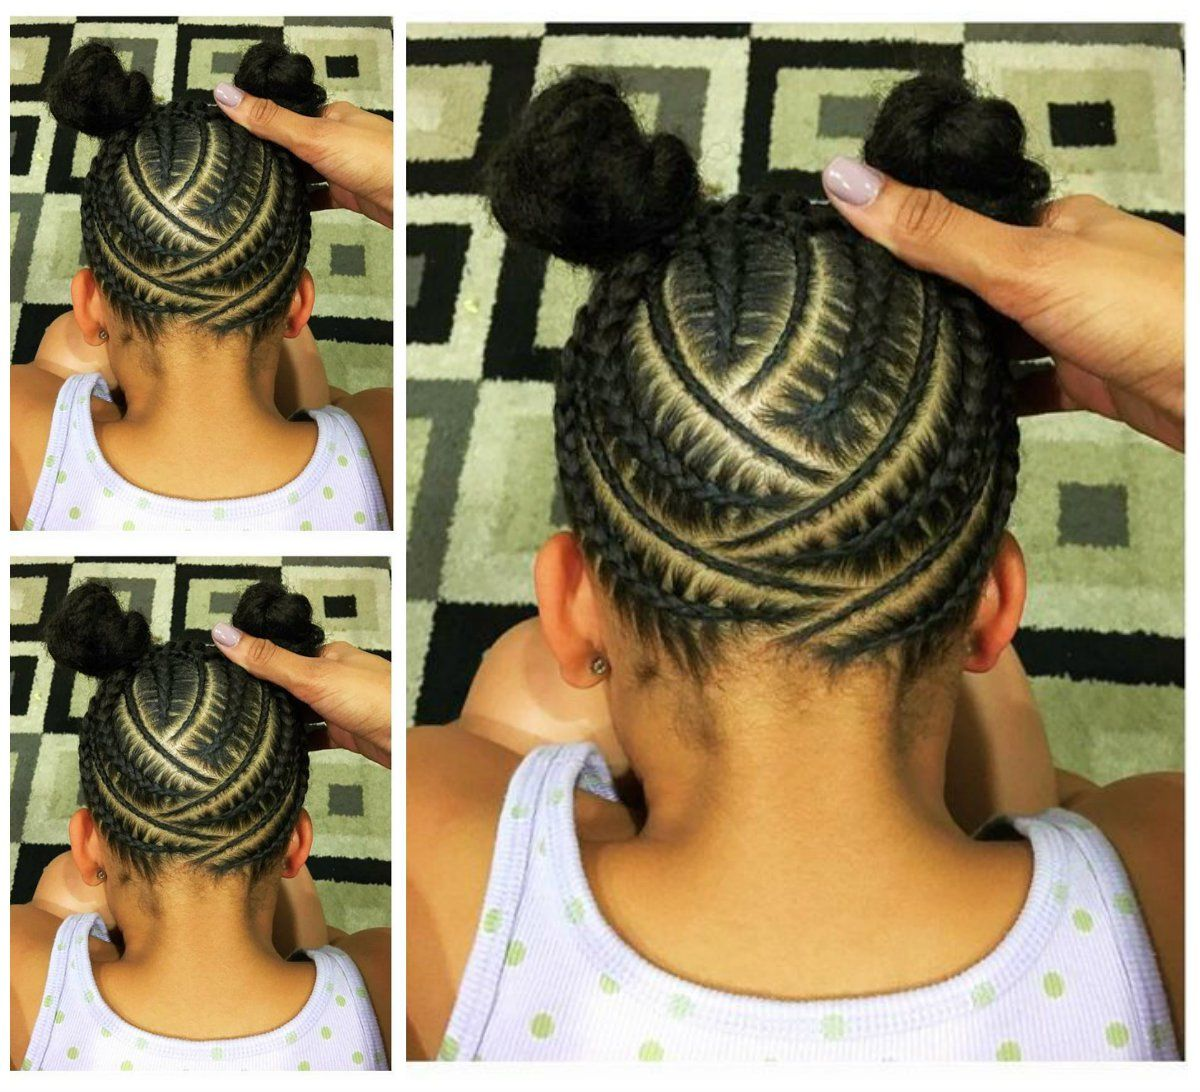 29 Braided Cornrows With Buns For Little Black Girls Afrocosmopolitan Hair Styles Natural Hair Styles For Black Women Stylish Hair